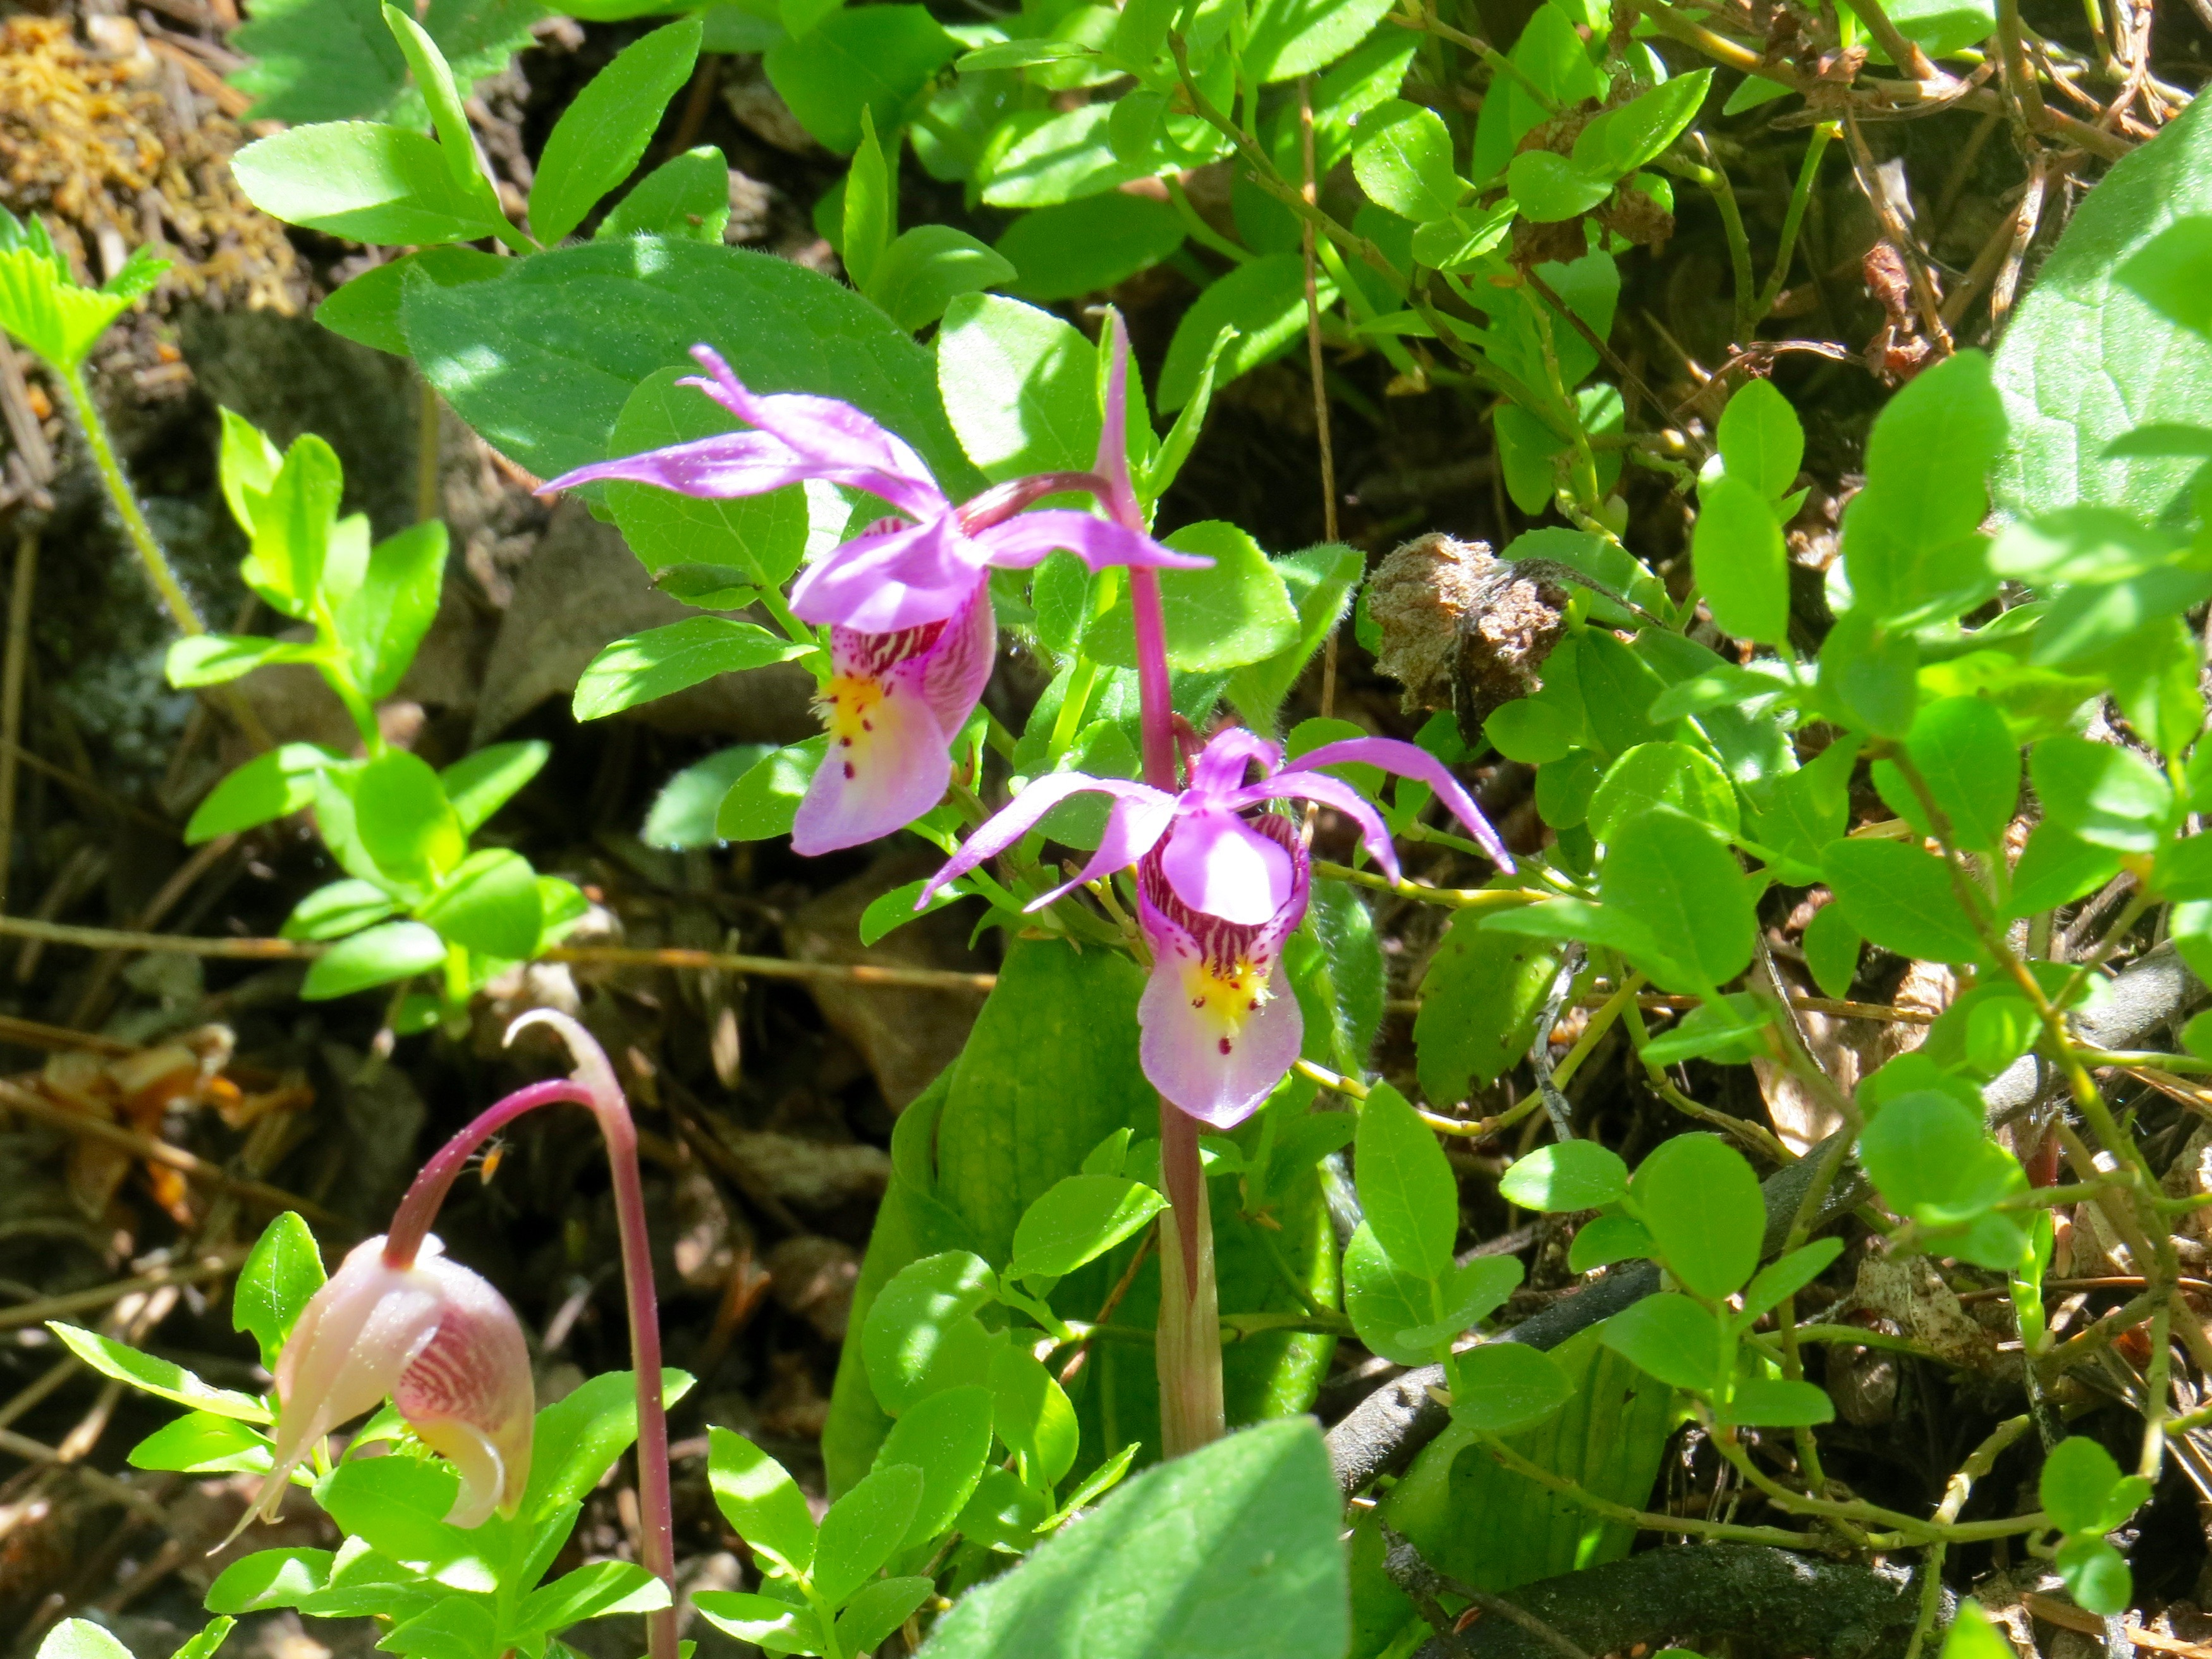 It's always special to spot a Calypso Orchid (Fairyslipper).  Because this orchid is in decline in North America, we always try to record our finding and take a photo.